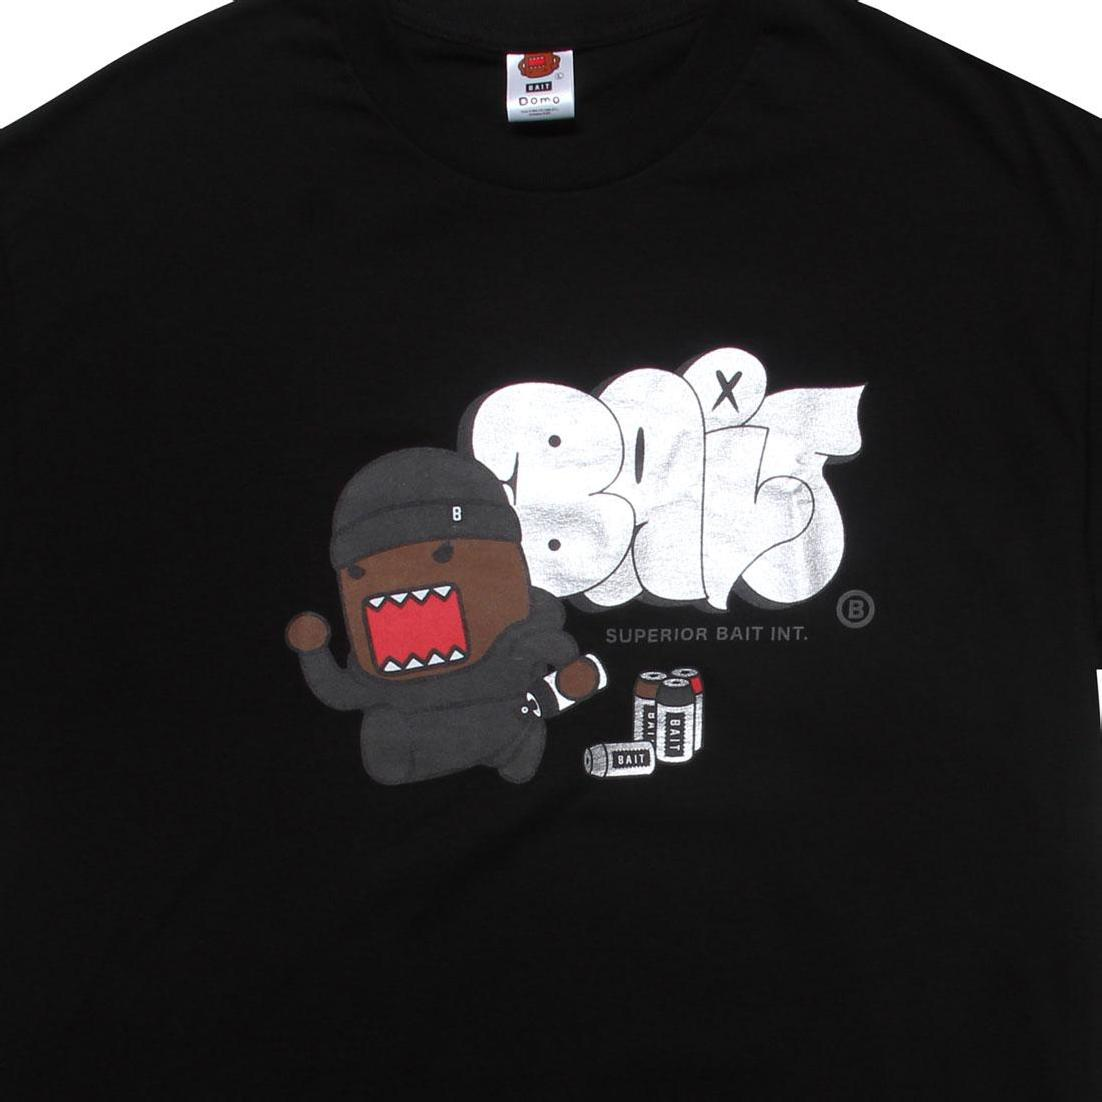 BAIT x Domo Apparel Collection – Now Available